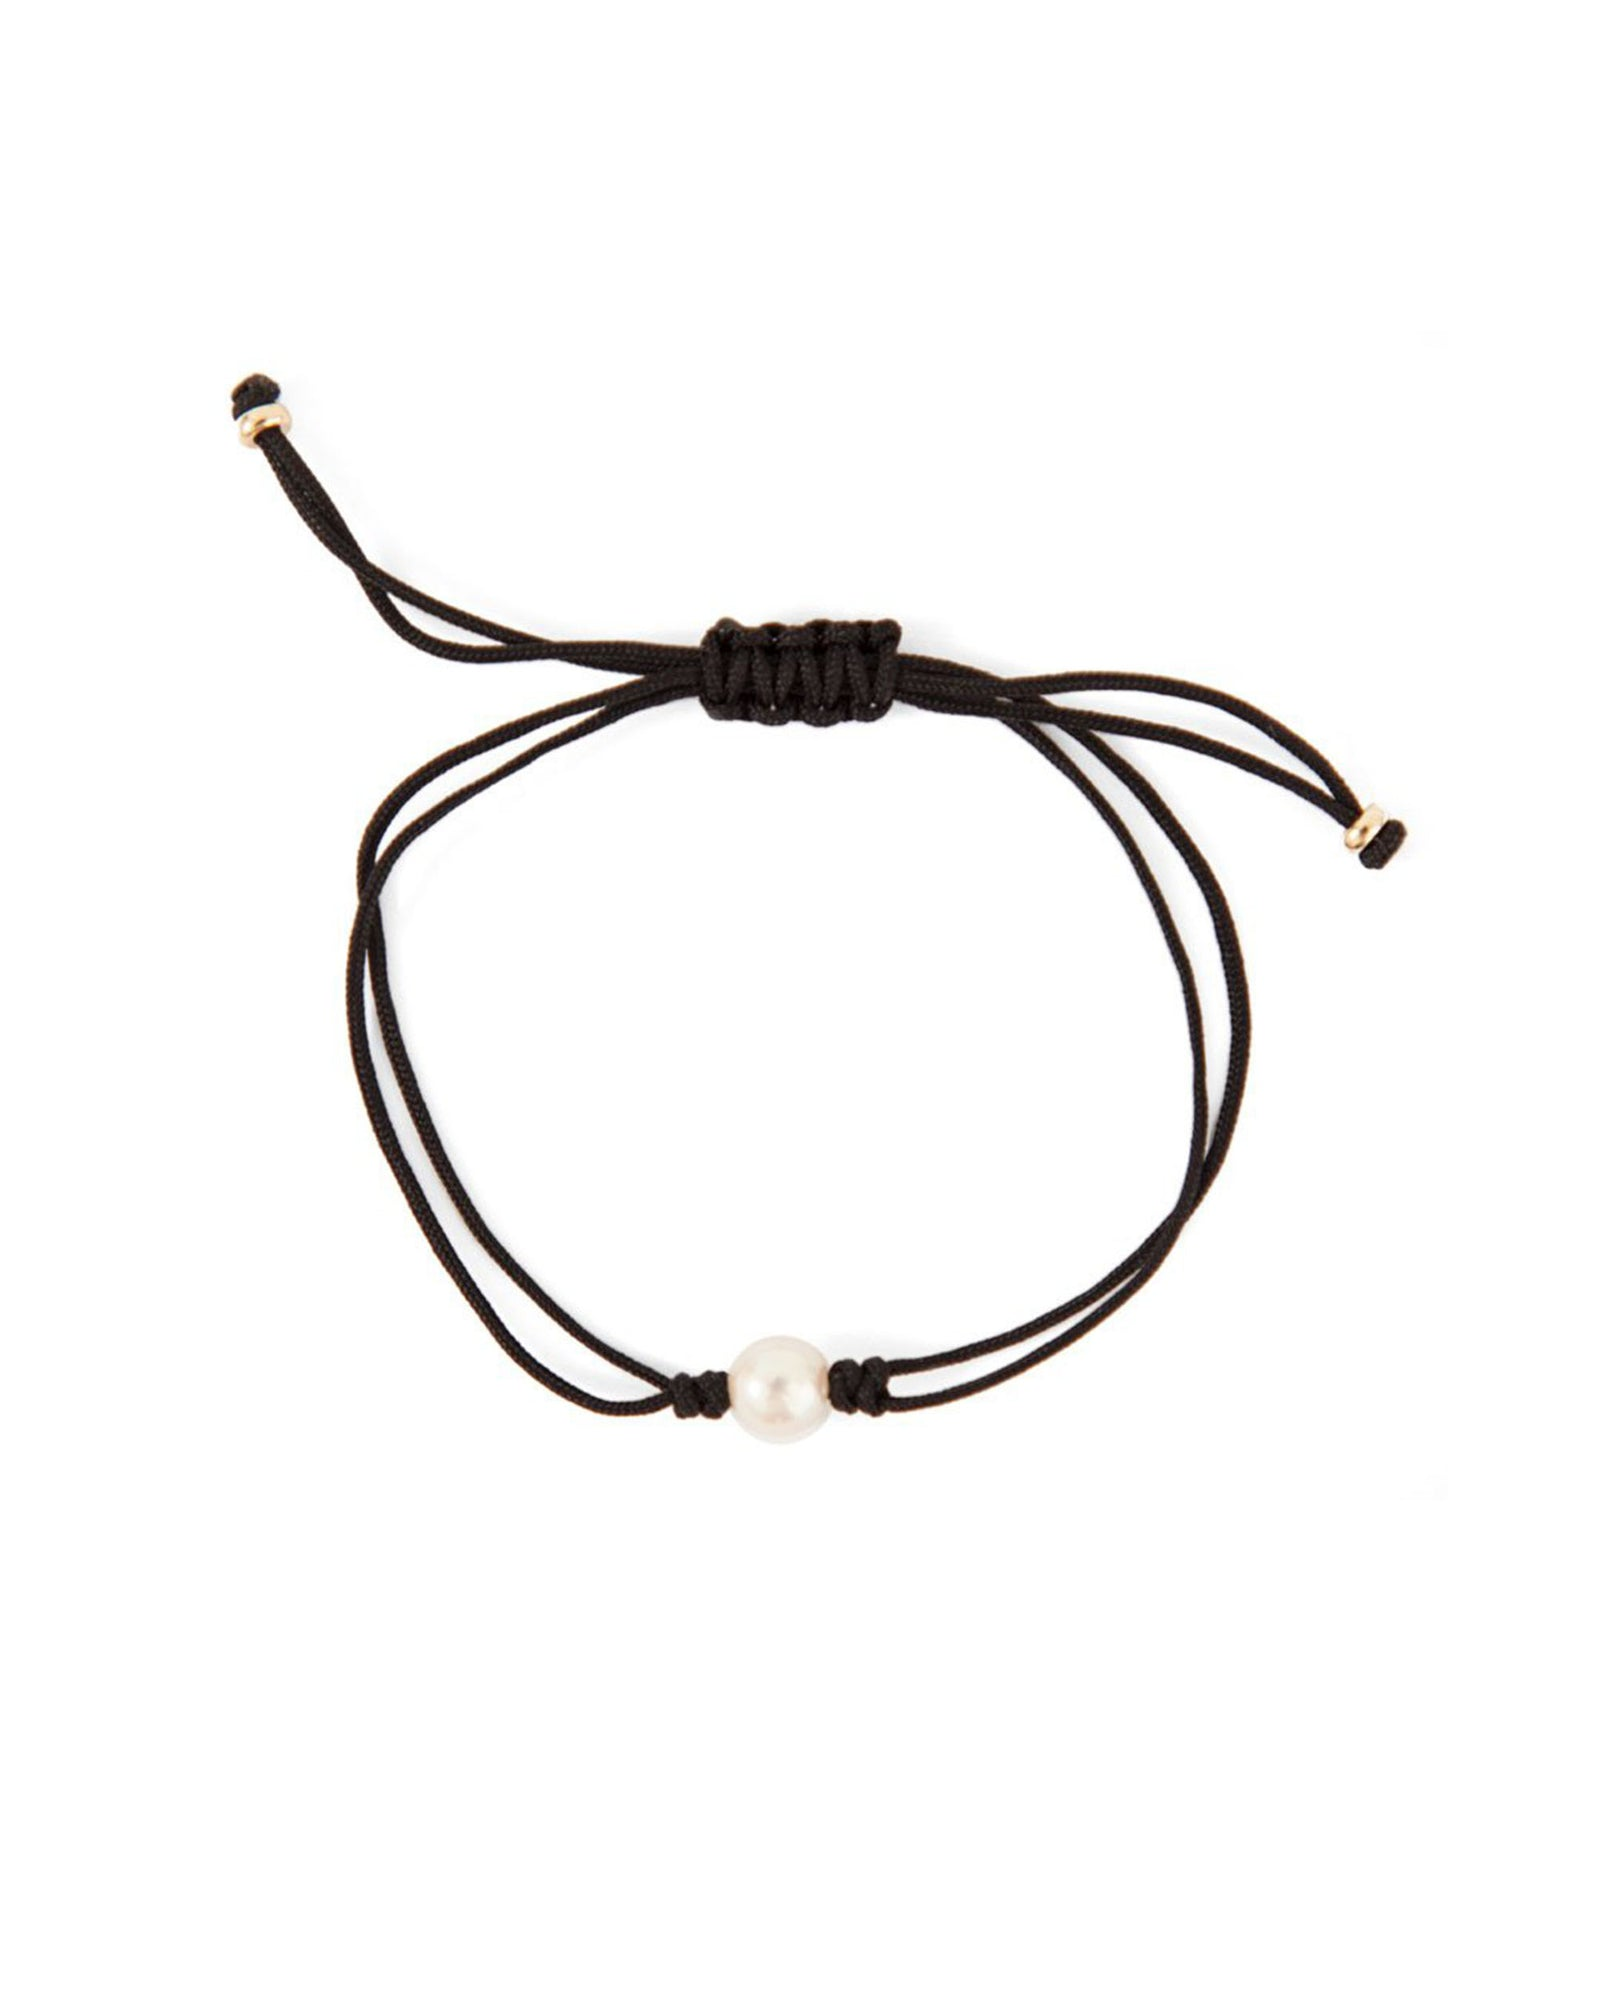 Grace Lee Pearl Silk Cord Bracelet in Black